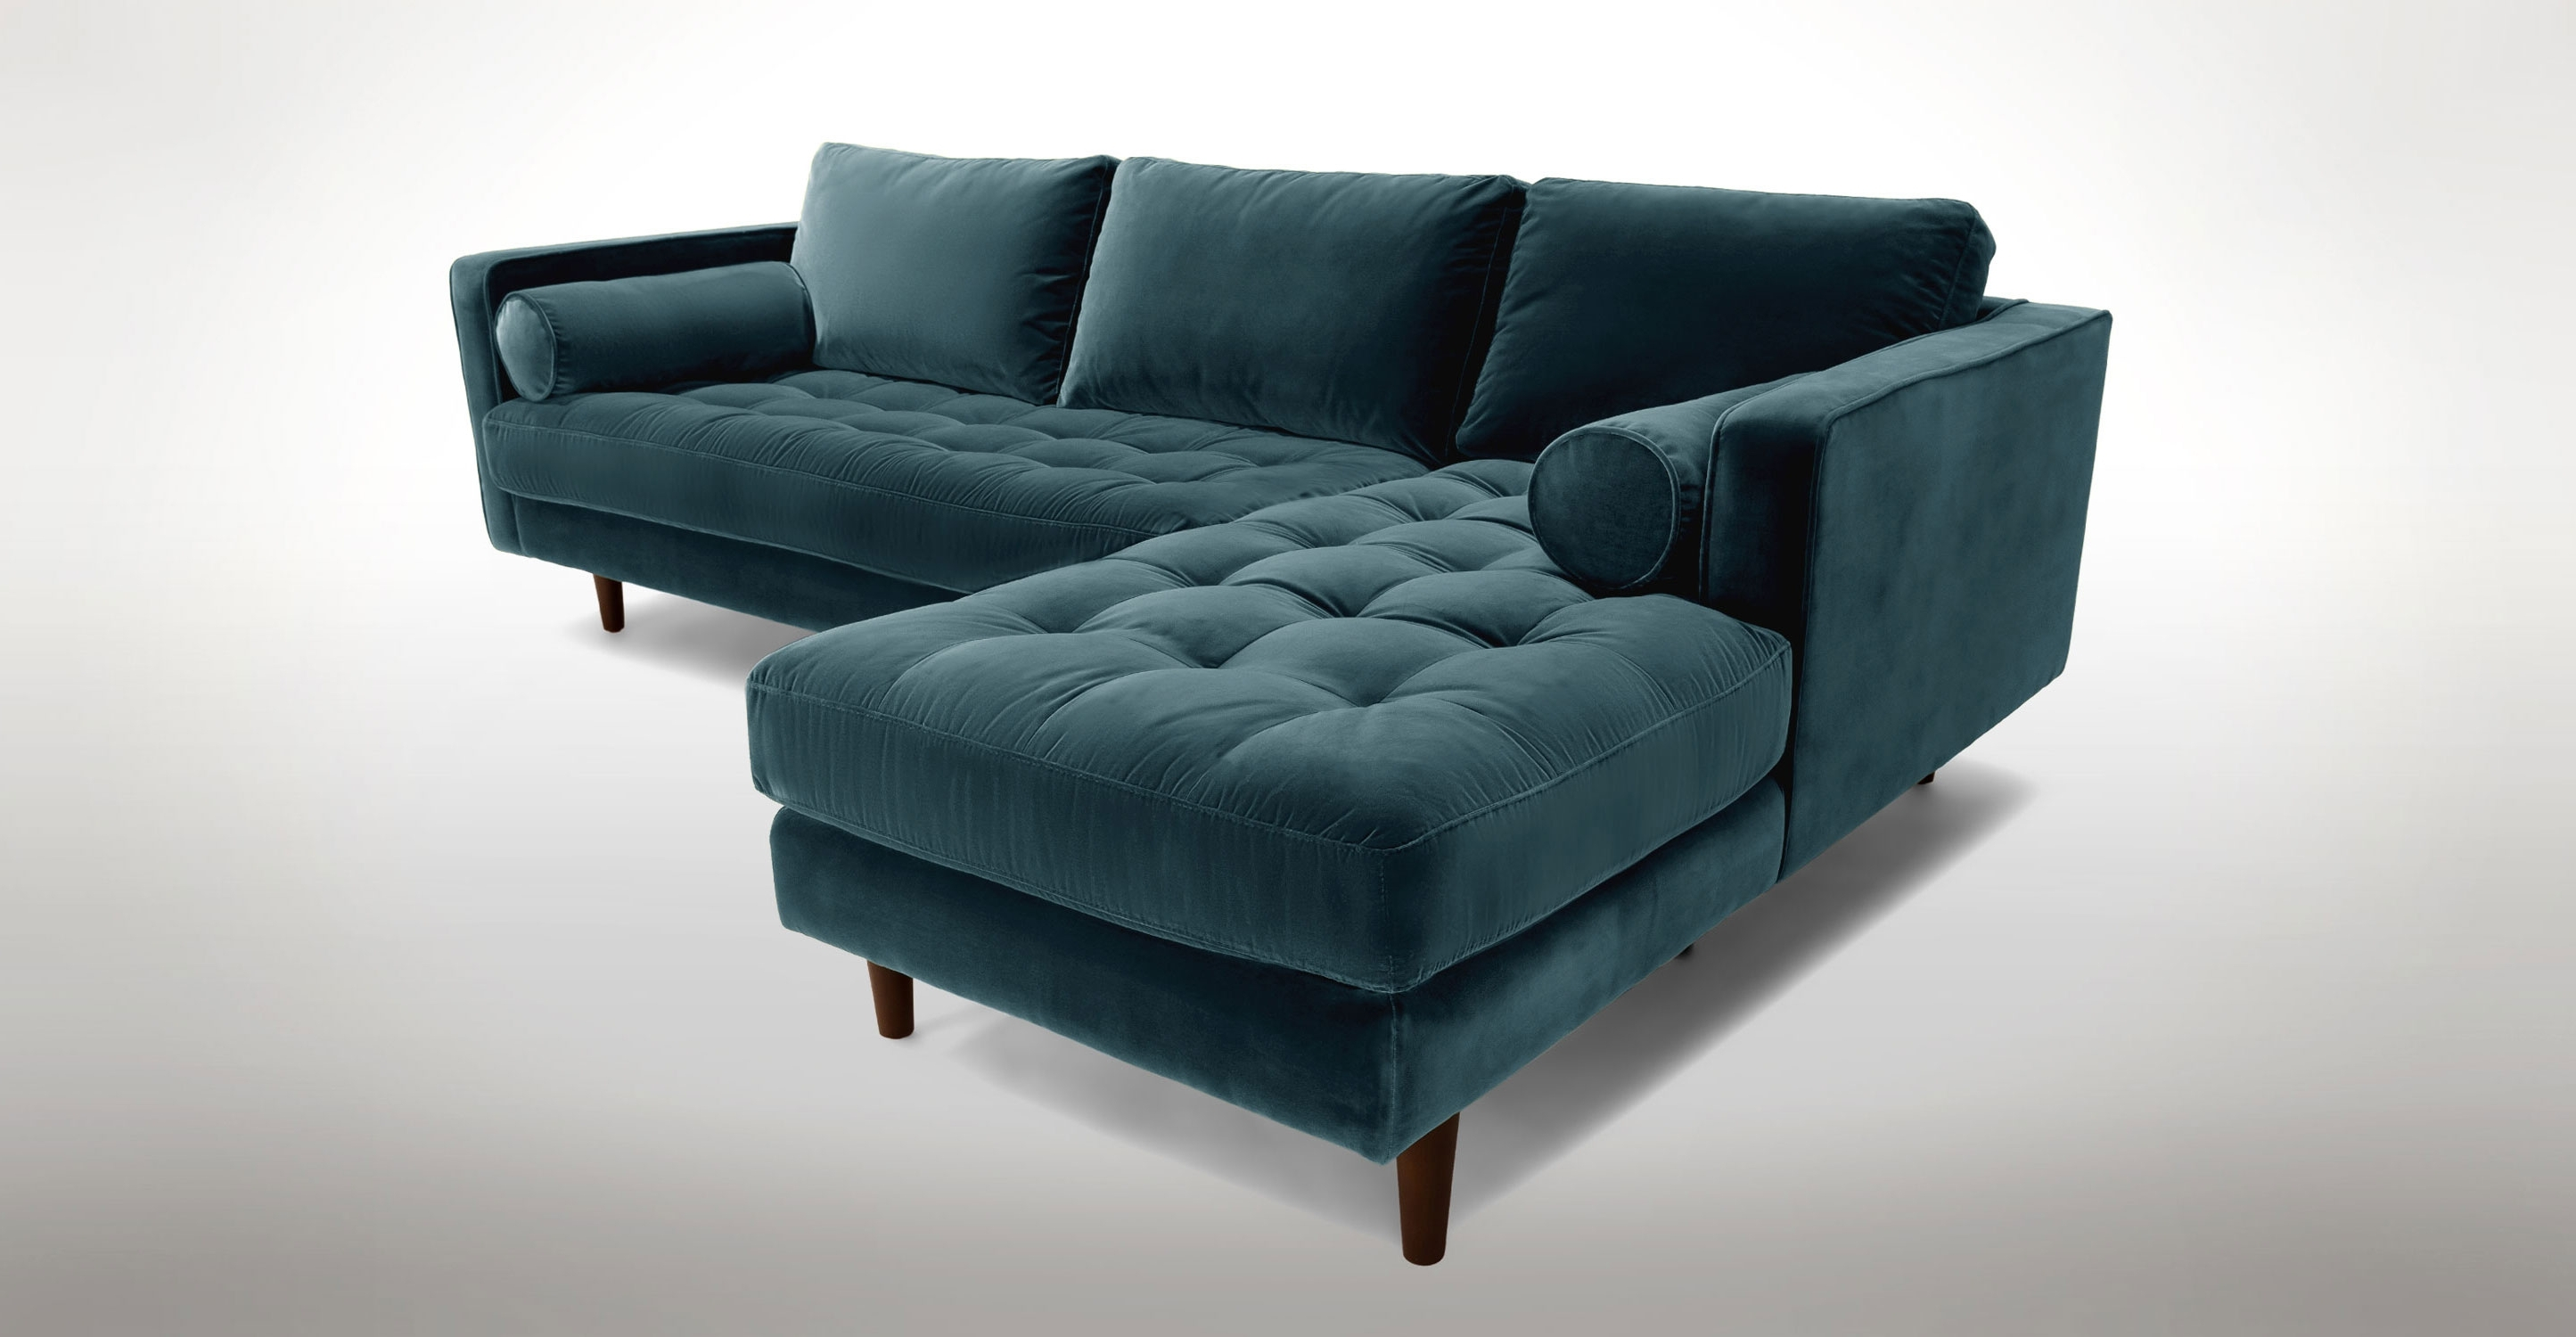 Article Sven Modern Pertaining To 2019 Green Sectional Sofas (View 7 of 20)